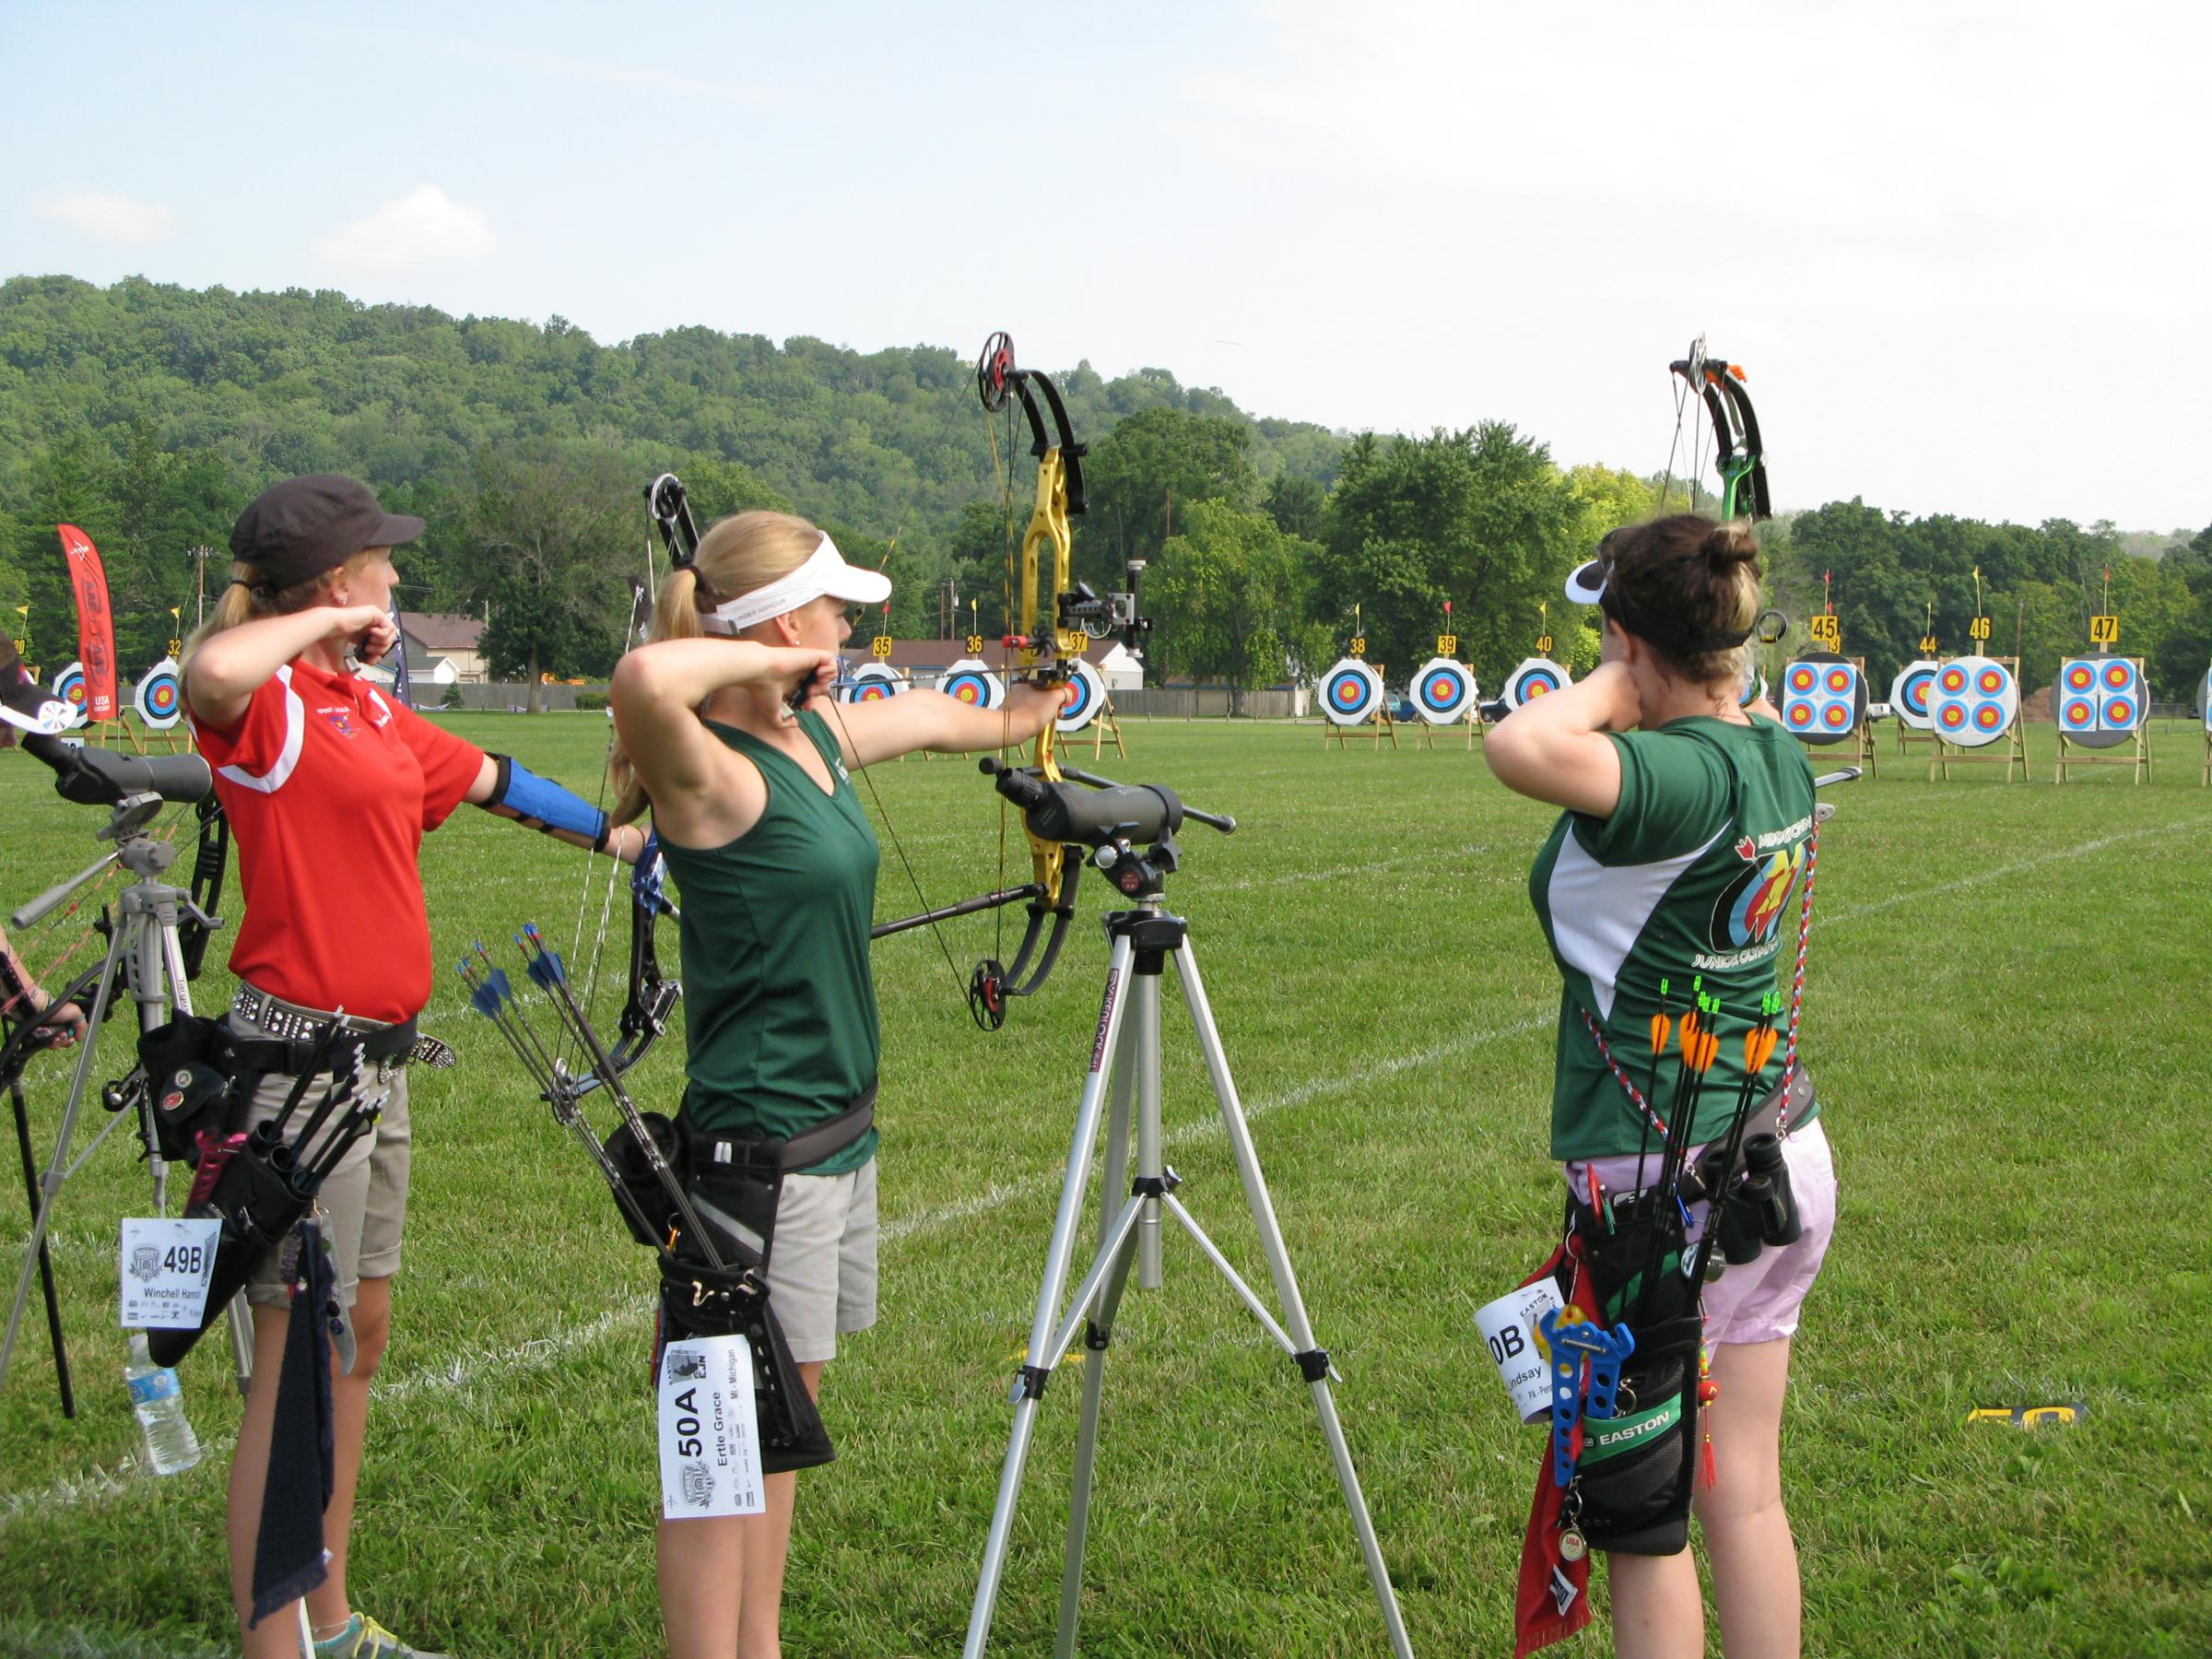 National archery competition draws hundreds, including Olympians | WVXU